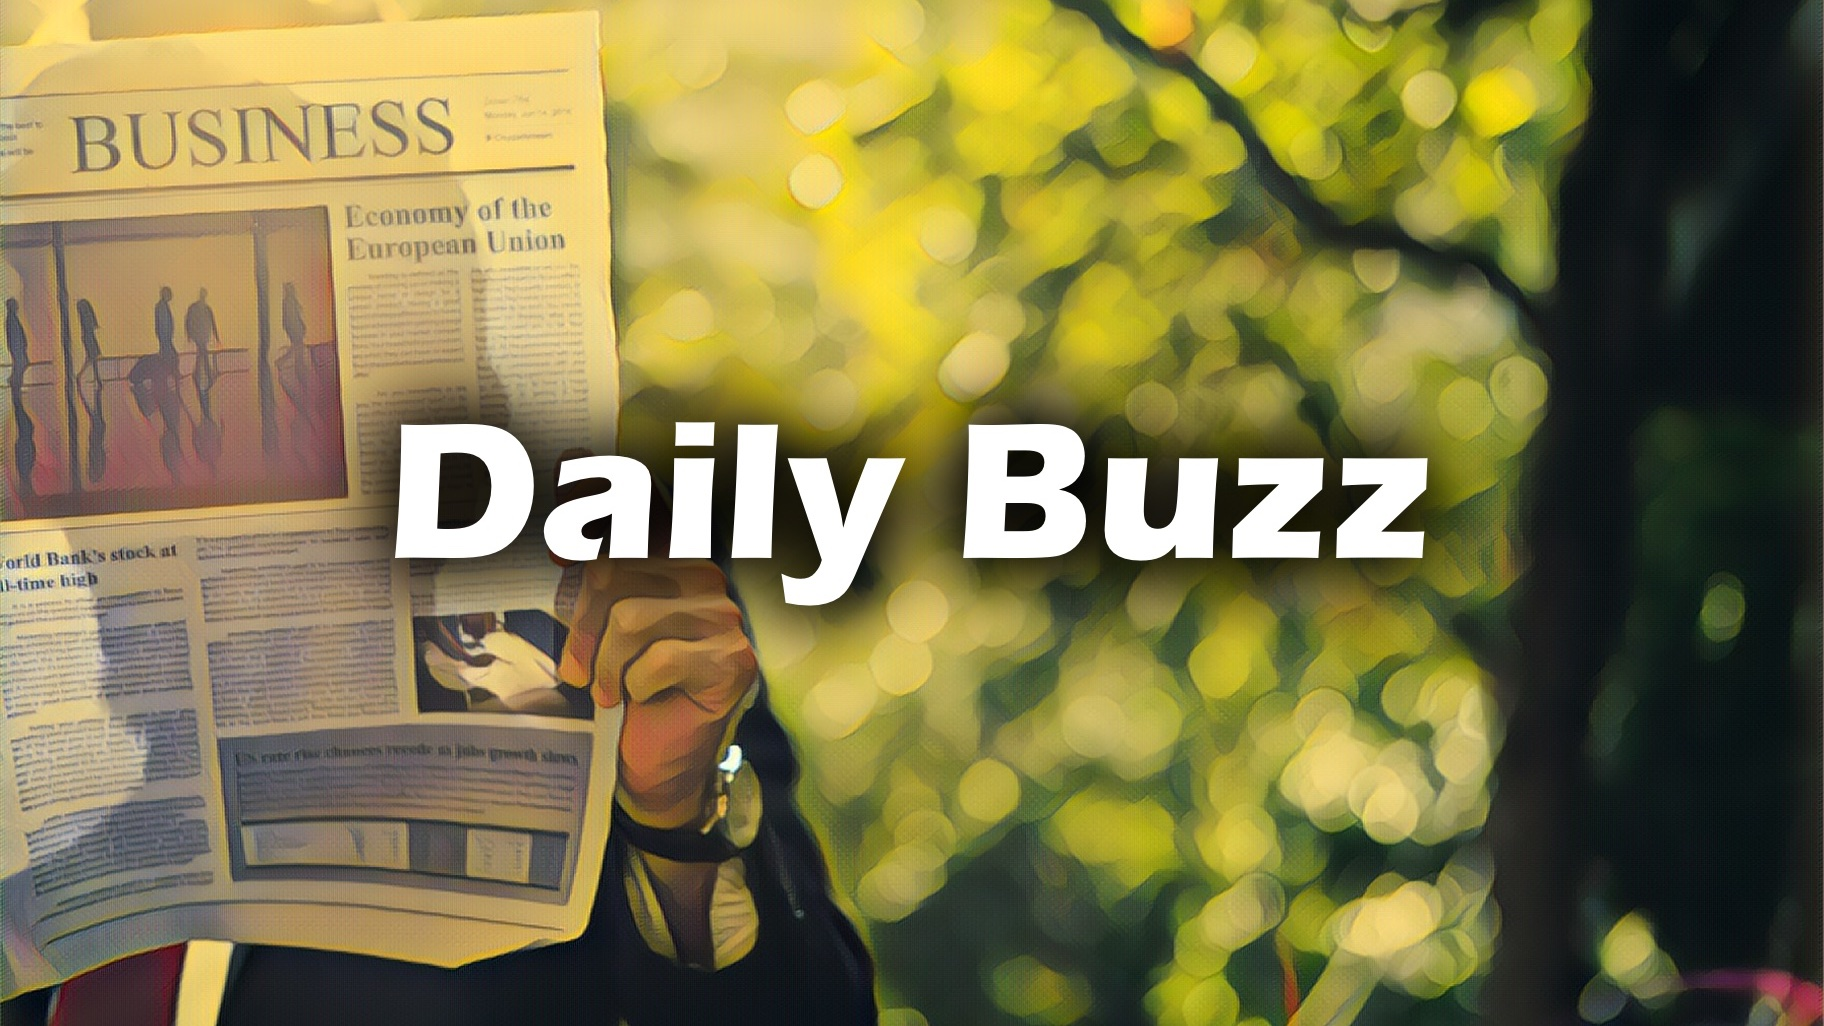 DailyBuzz Friday 27 July 2018